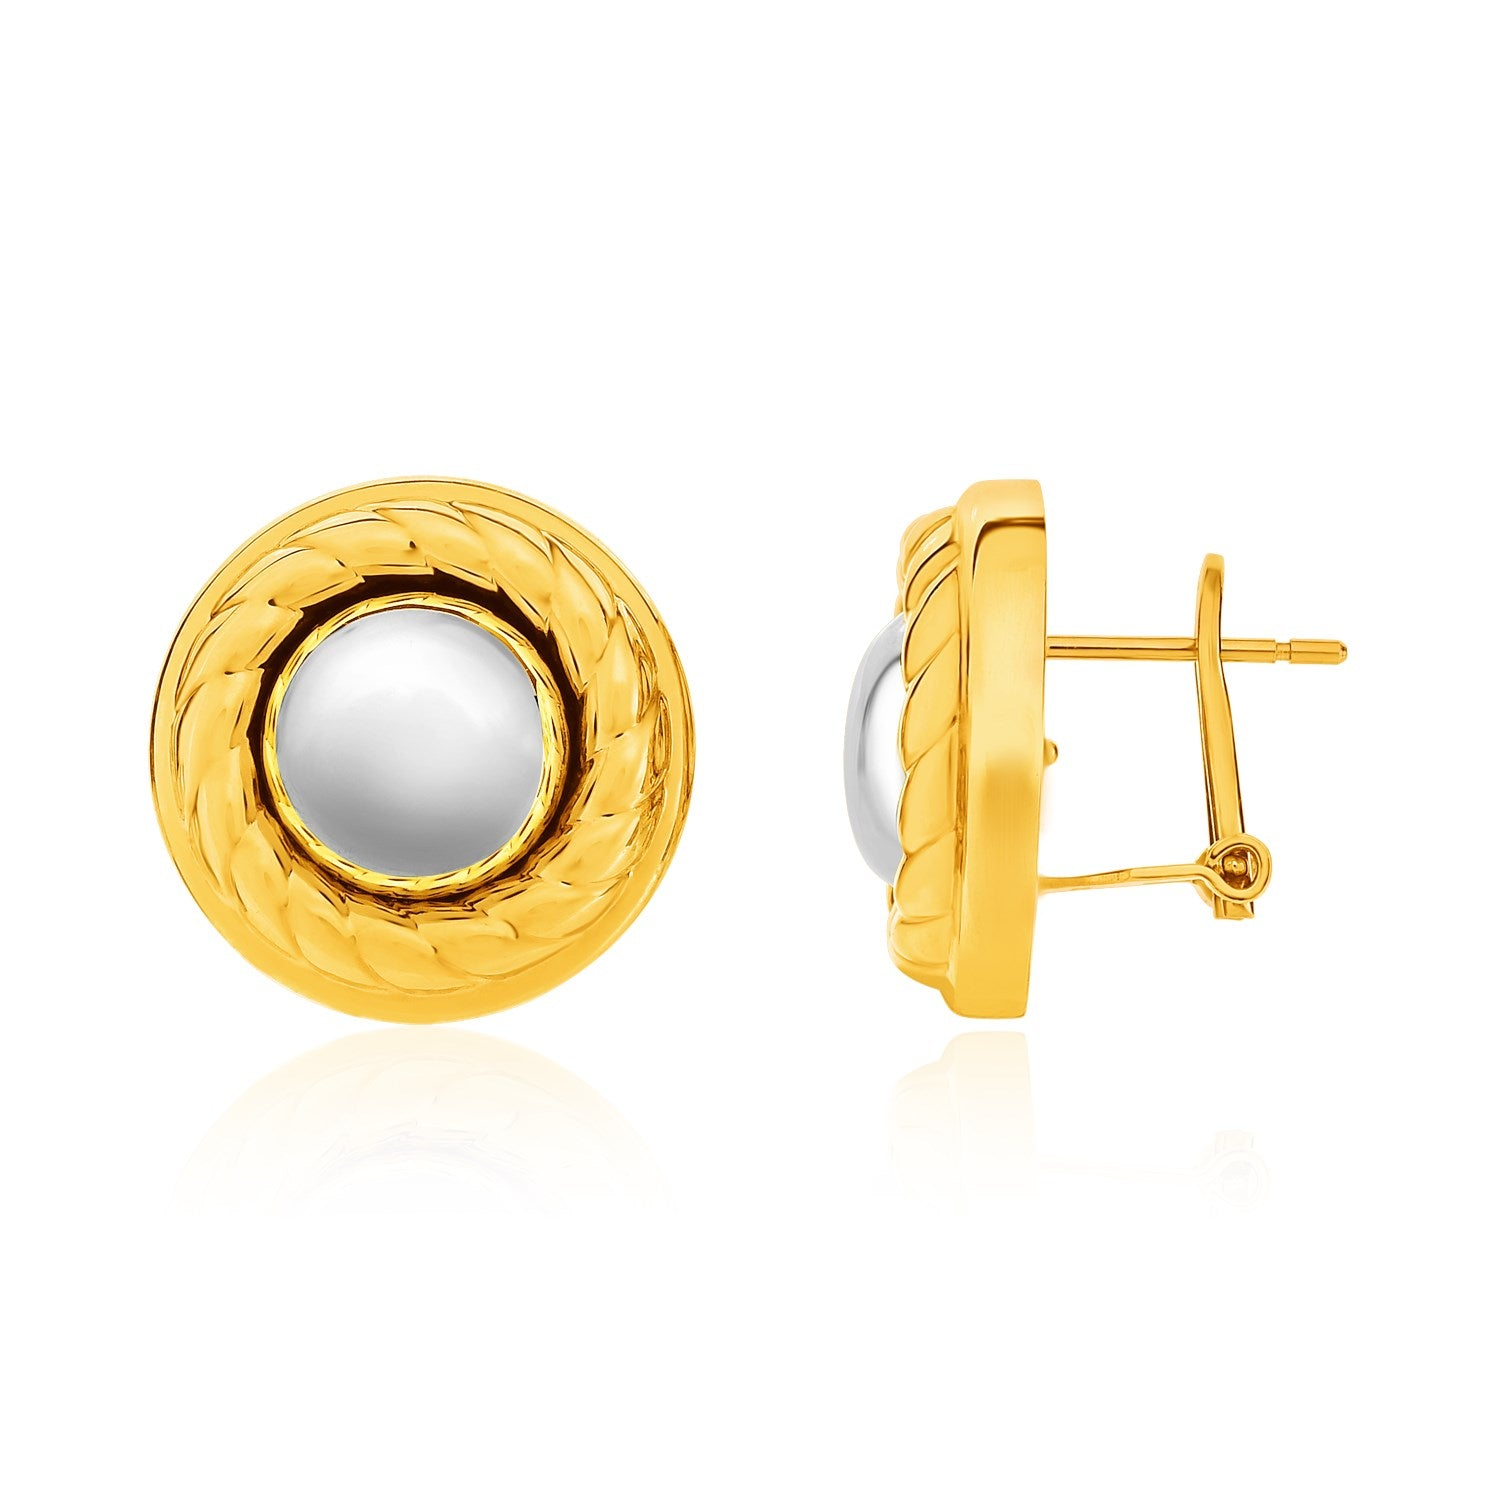 Original New York Style  14K Two-Tone Yellow and White Gold Ball and Rope Texture Post Earrings